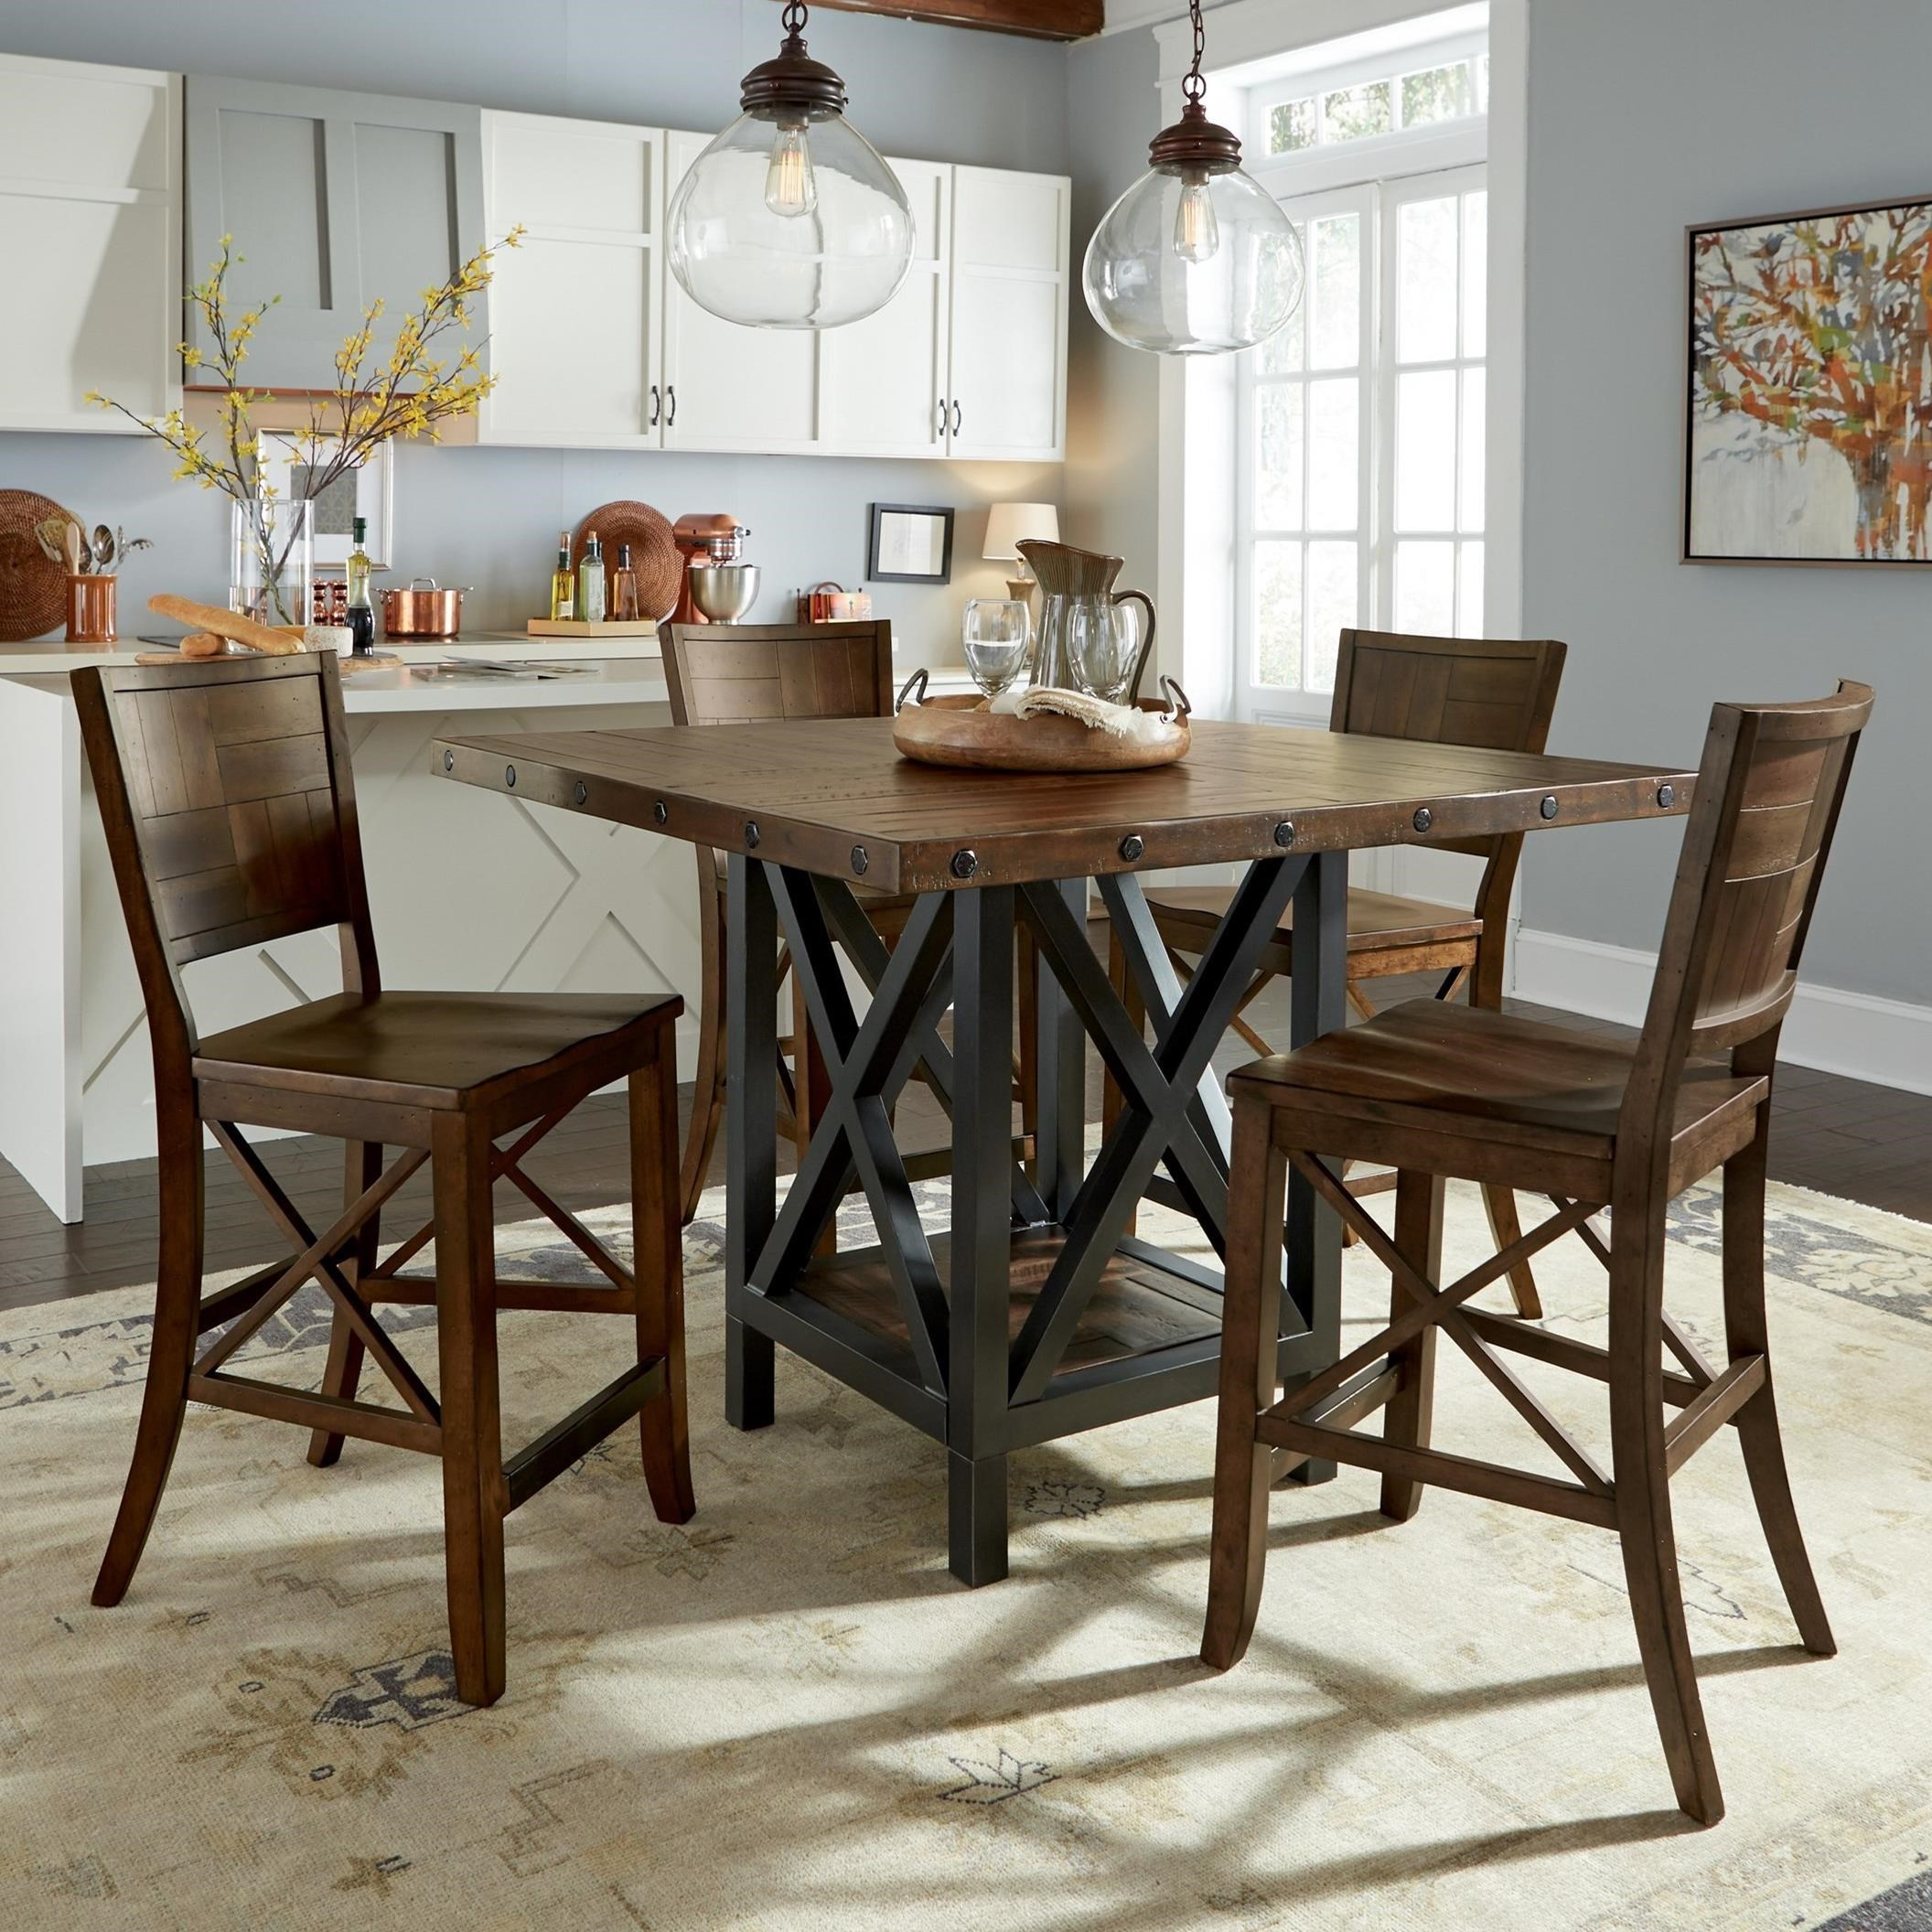 counter height kitchen chairs Flexsteel Wynwood Collection Carpenter 5 Piece Counter Height Dining Set with X Motif Olinde s Furniture Pub Table and Stool Set